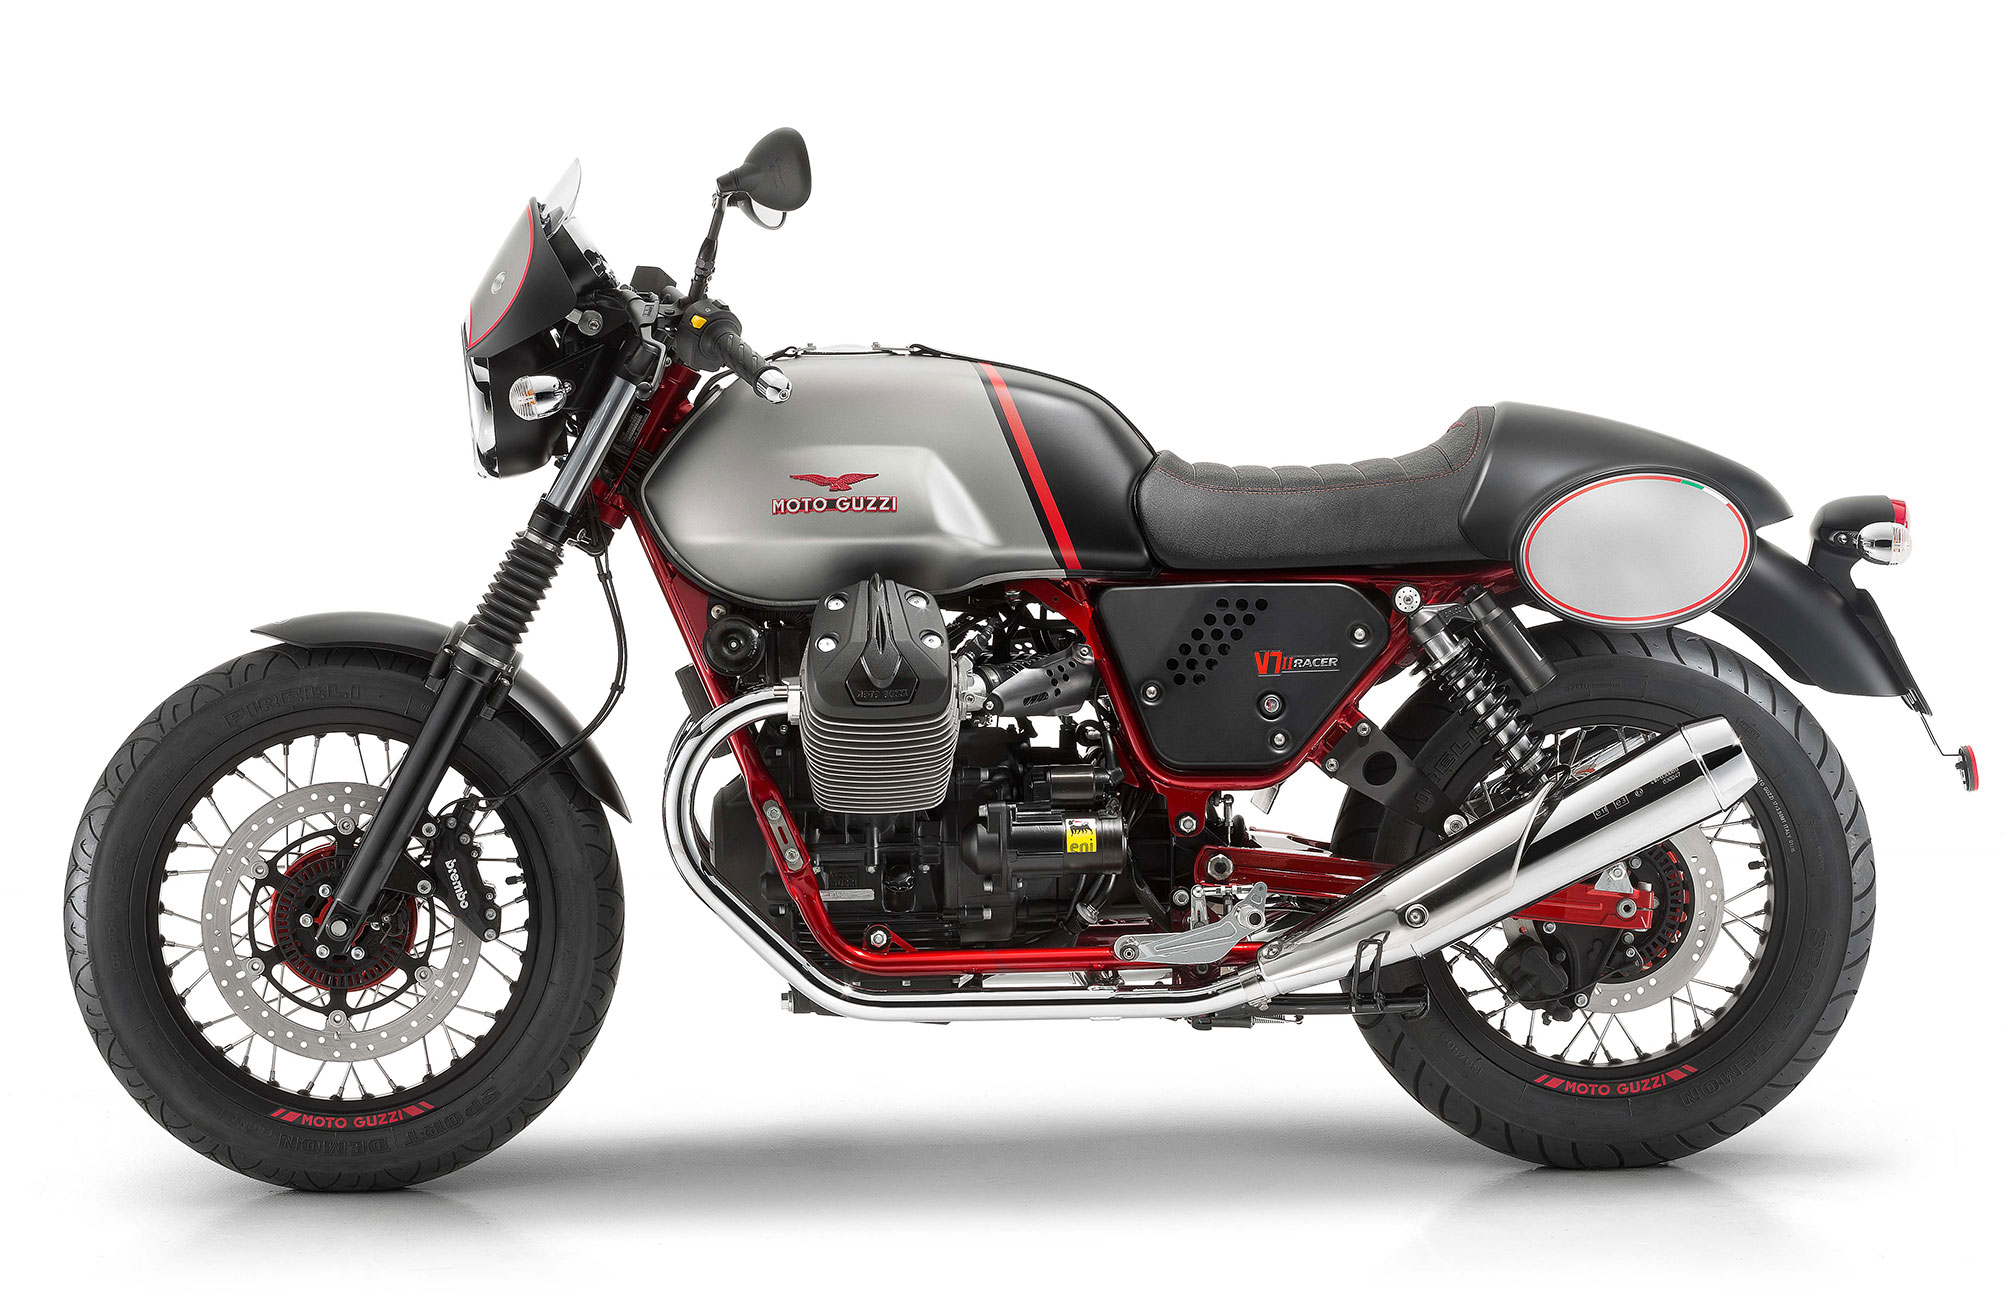 2017 moto guzzi v7 ii racer review. Black Bedroom Furniture Sets. Home Design Ideas